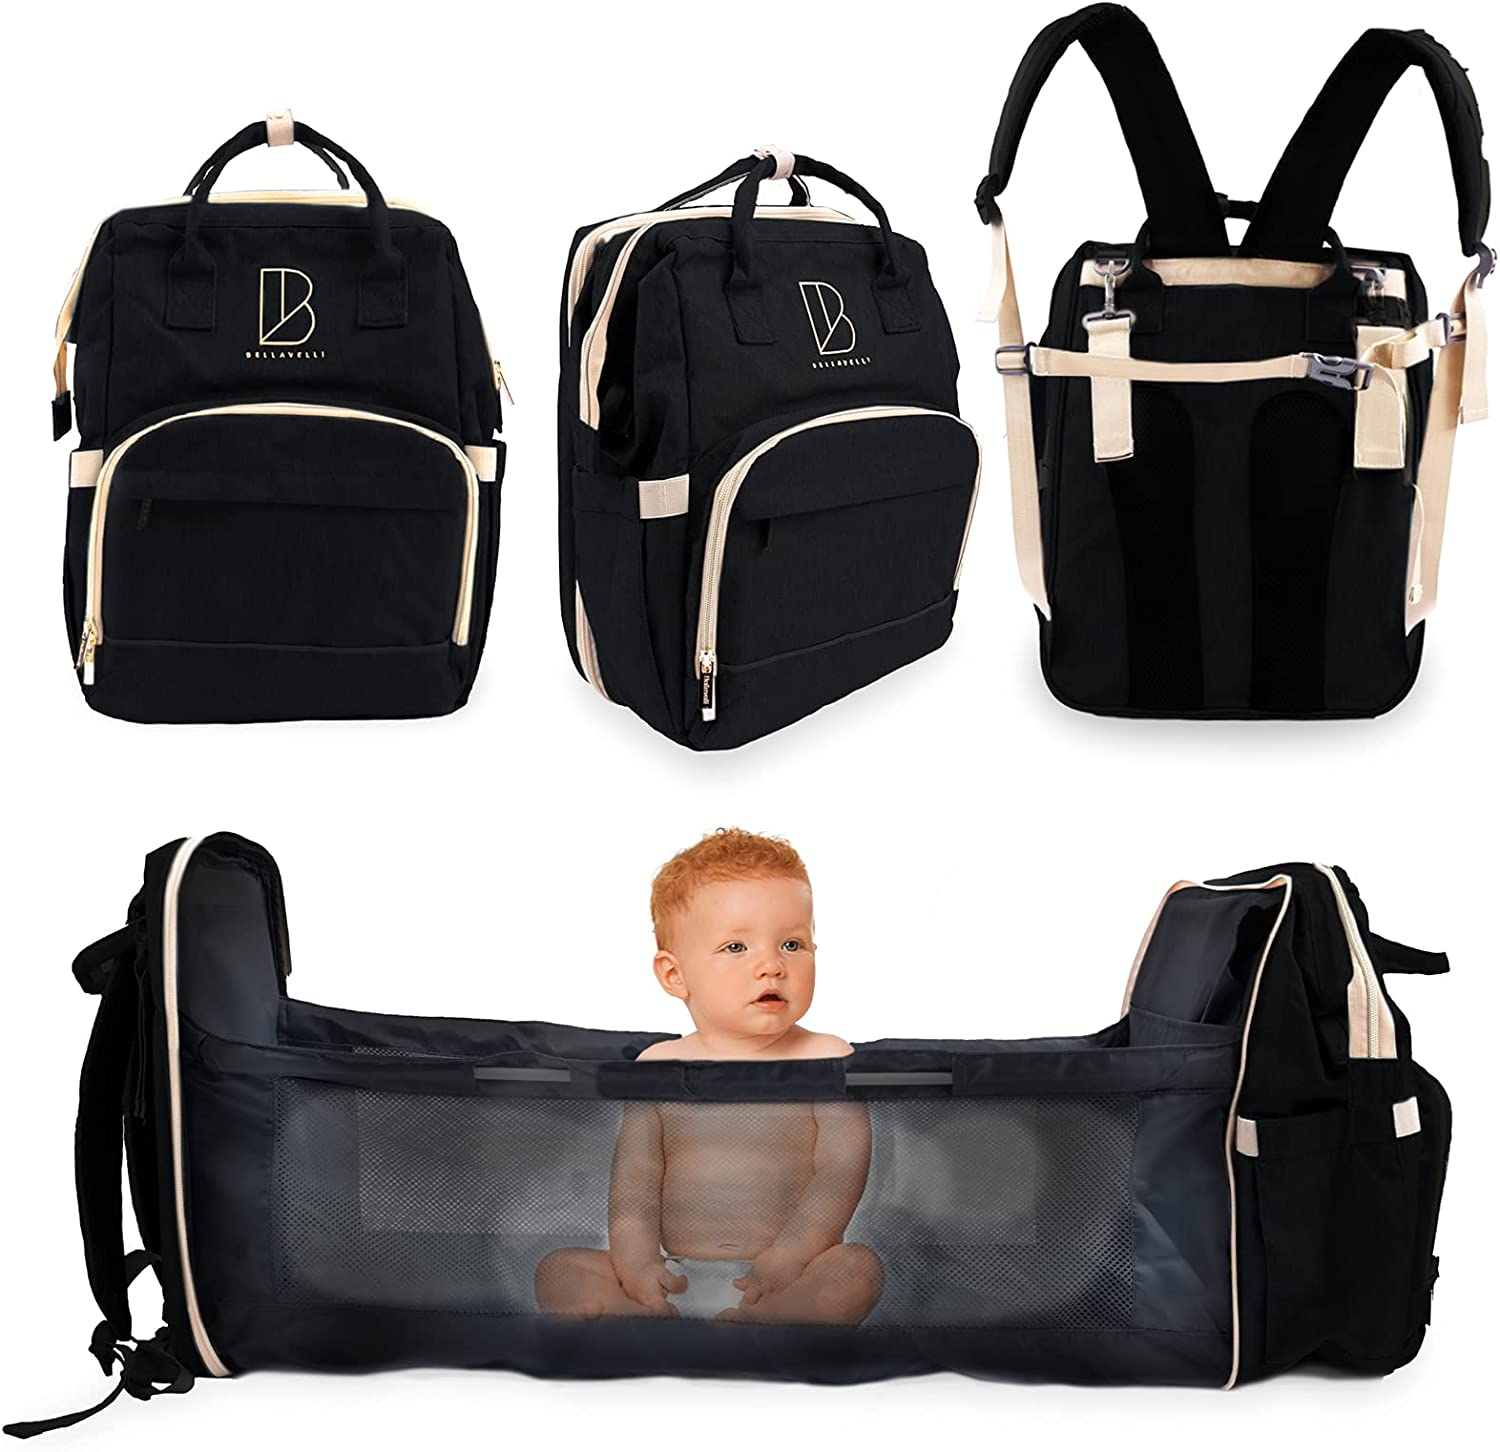 Diaper Bag Backpack with Changing Station | Bellavelli | USB Quick Charge for Men, Women, Unisex | Waterproof | Thermal Insulated | Travel Bassinet Baby Changing Station (Black)